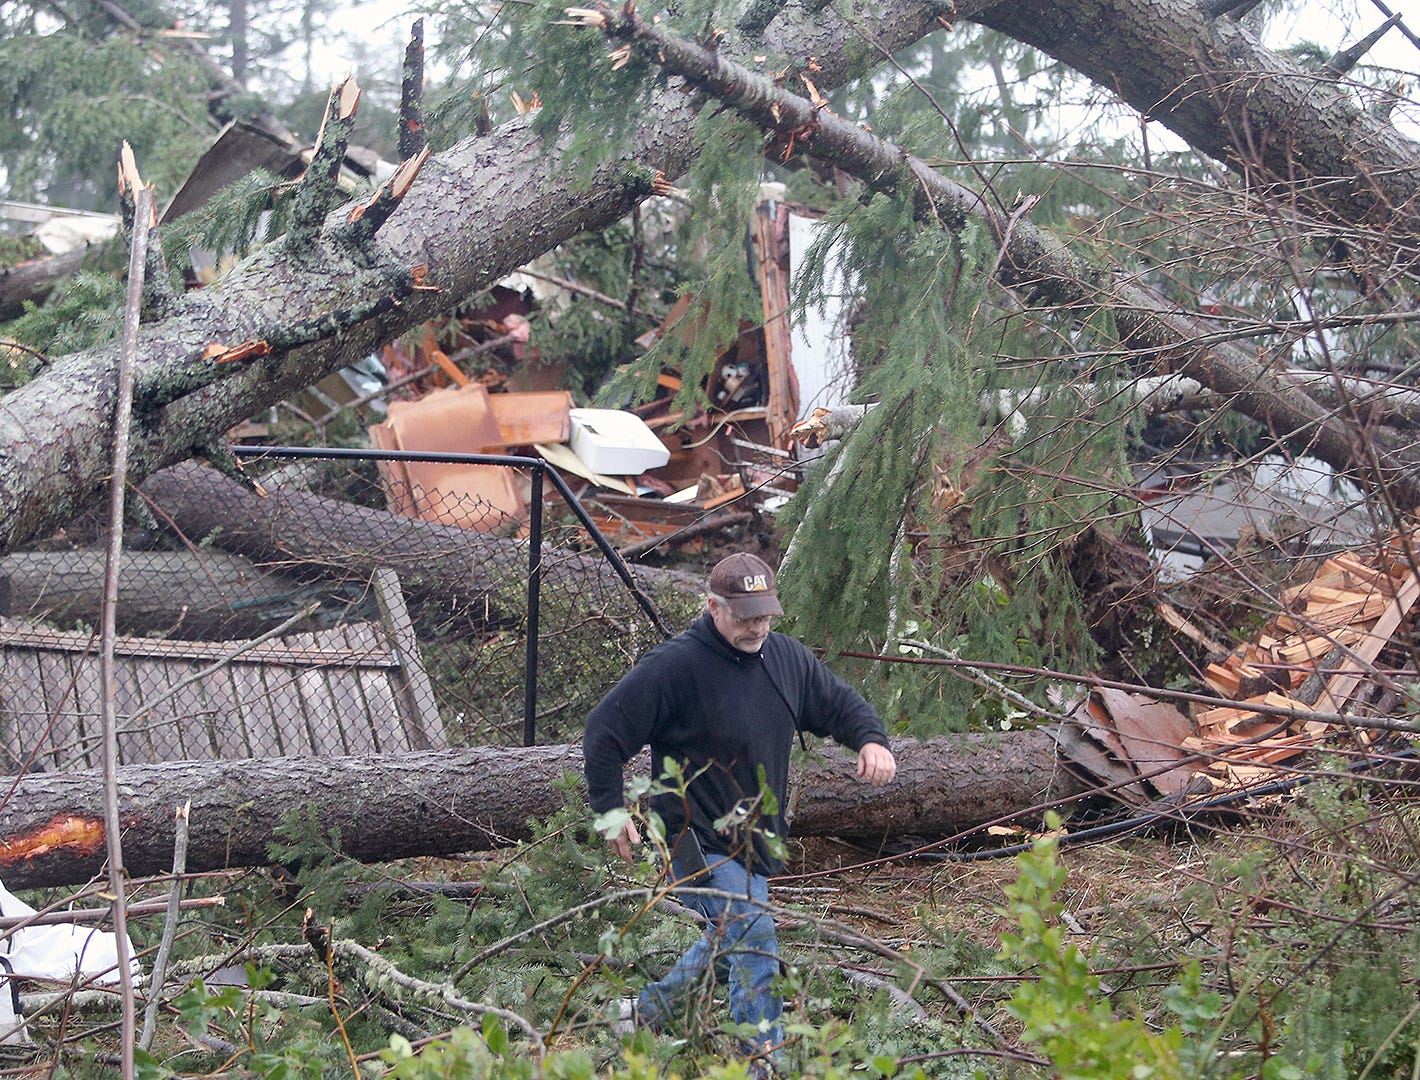 Matt Hargis walks through downed trees behind the Port Orchard Wal Mart after a tornado touched down shortly before 2 p.m. Tuesday, December 18.